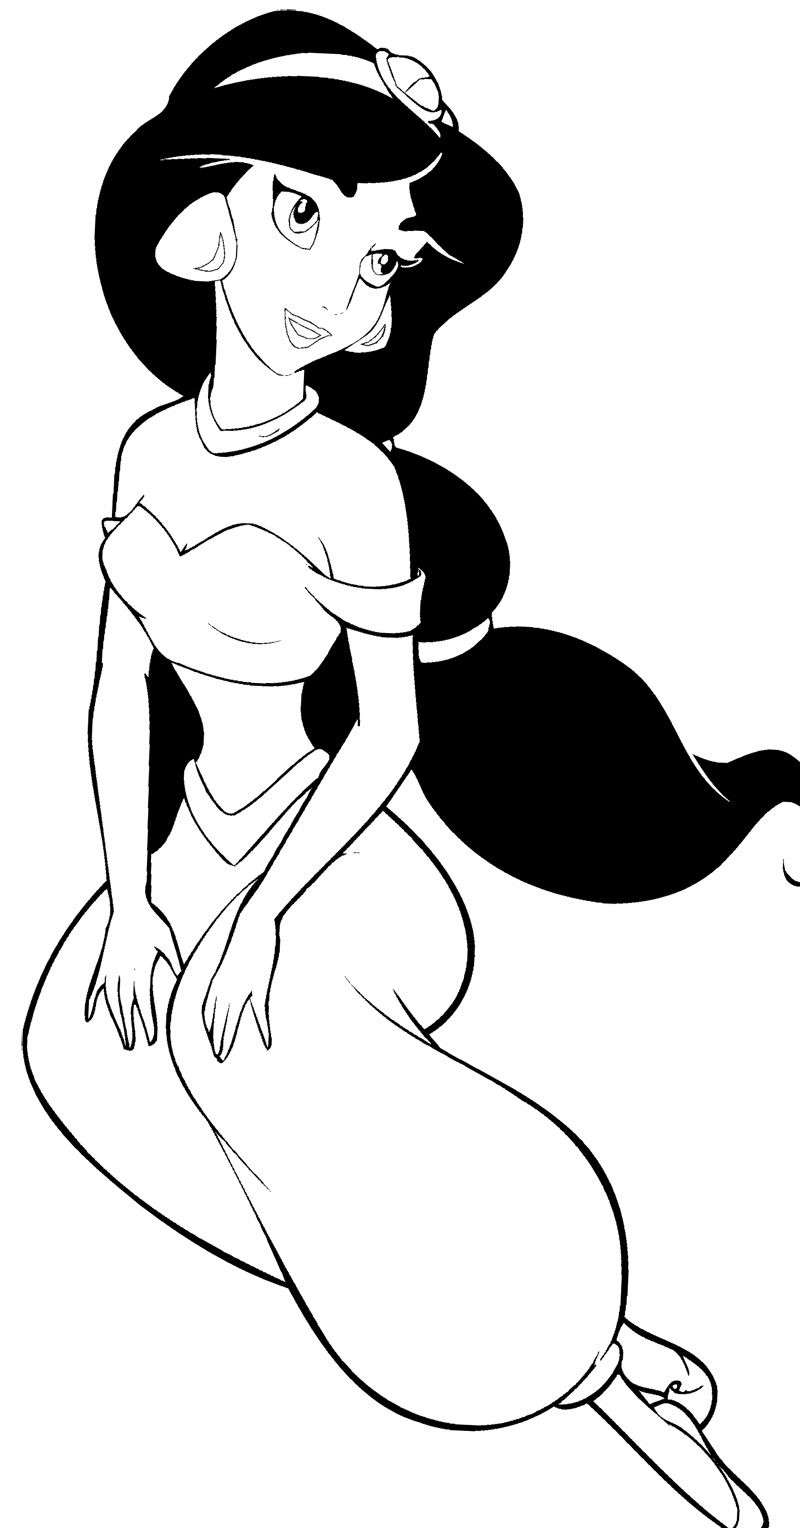 Disney Princess Jasmine Coloring Page  Aladdin  Pinterest